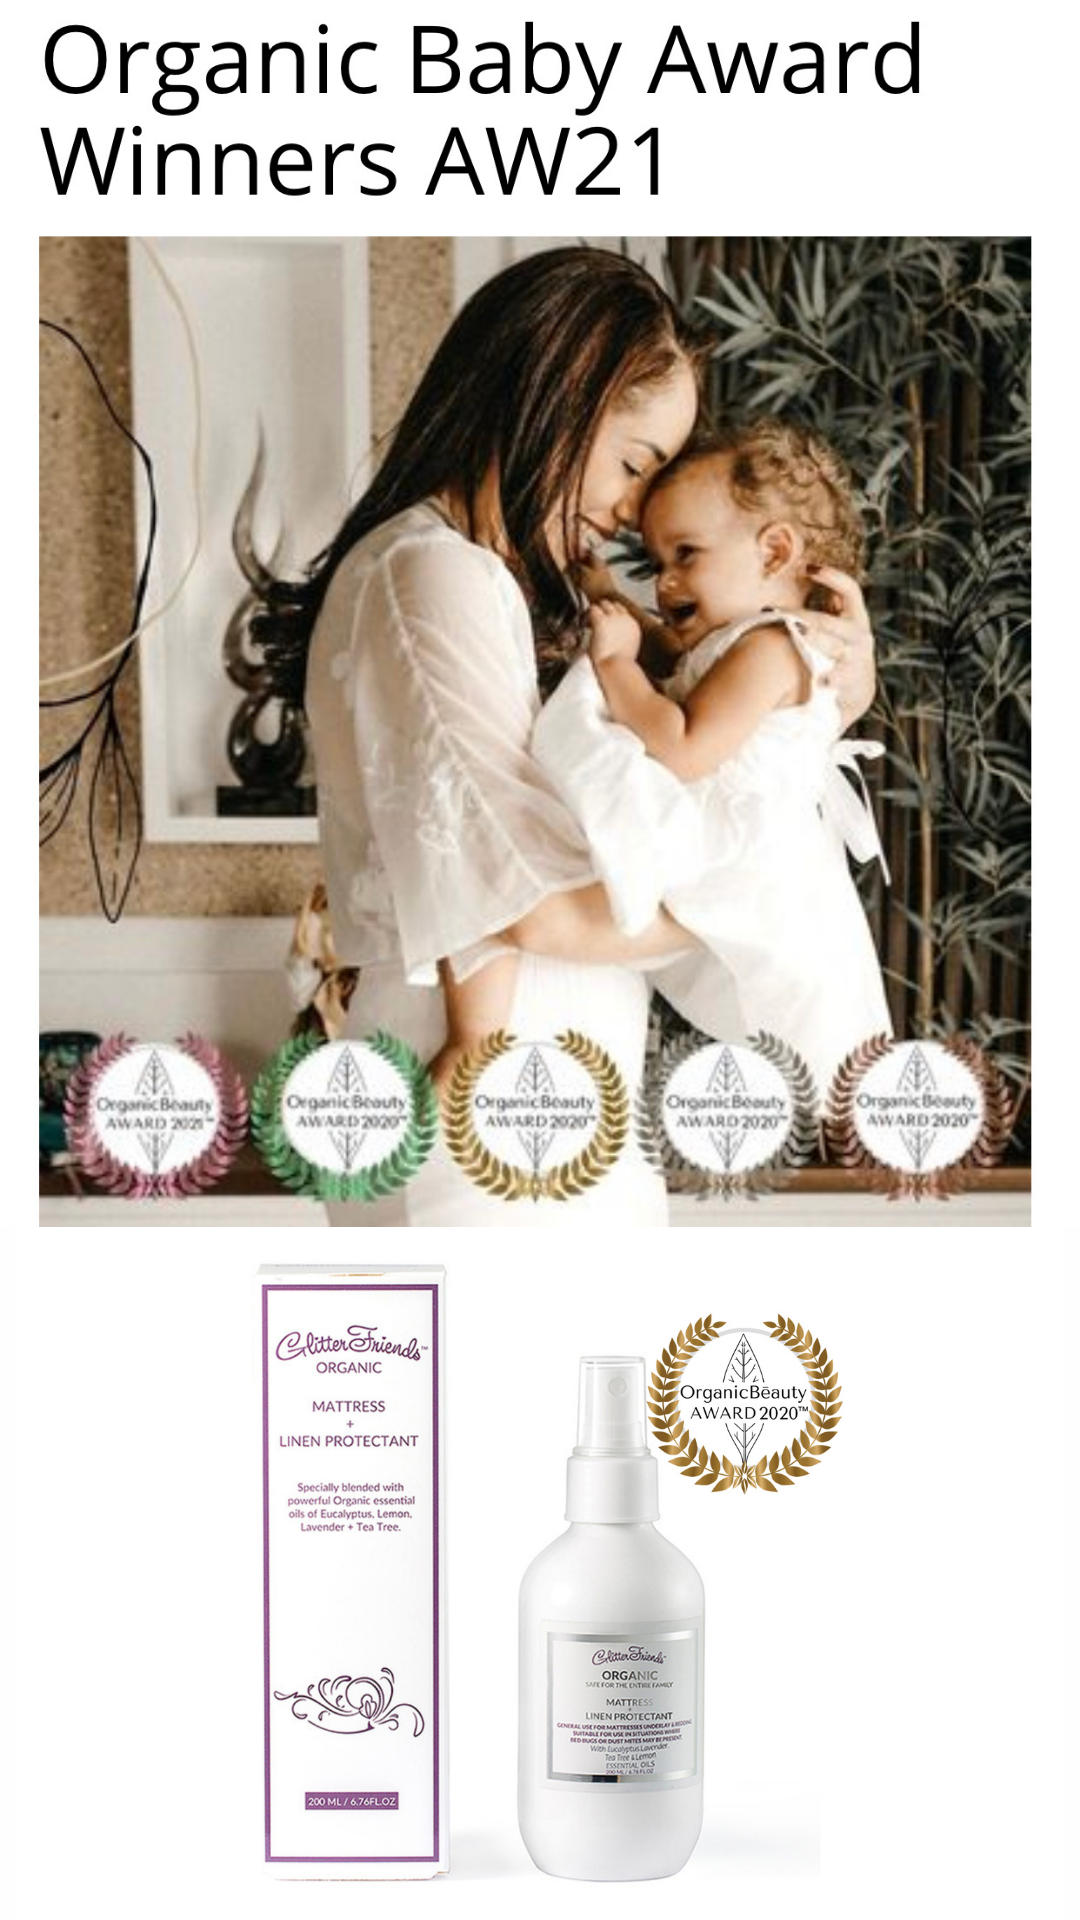 Mother kissing and cuddling her baby. Gold wreath product award beneath